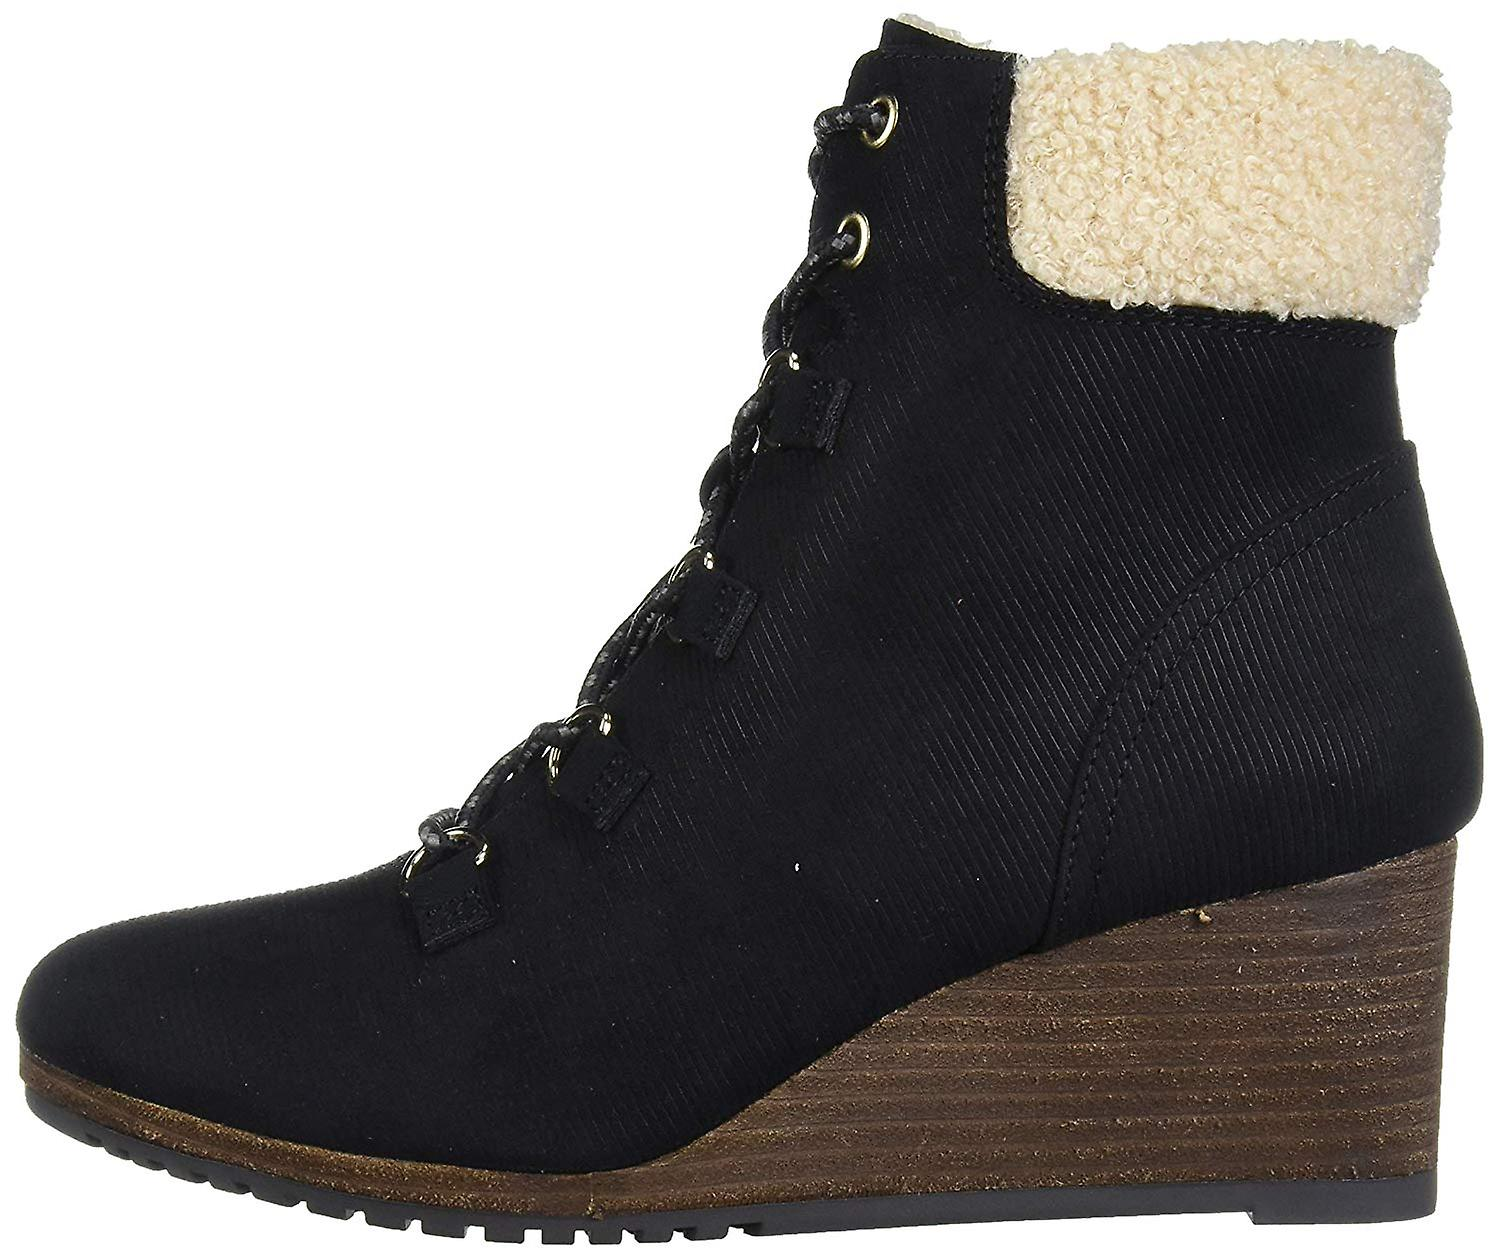 Dr. Scholl's Shoes Women's Charmer Bootie Ankle Boot lvaIC